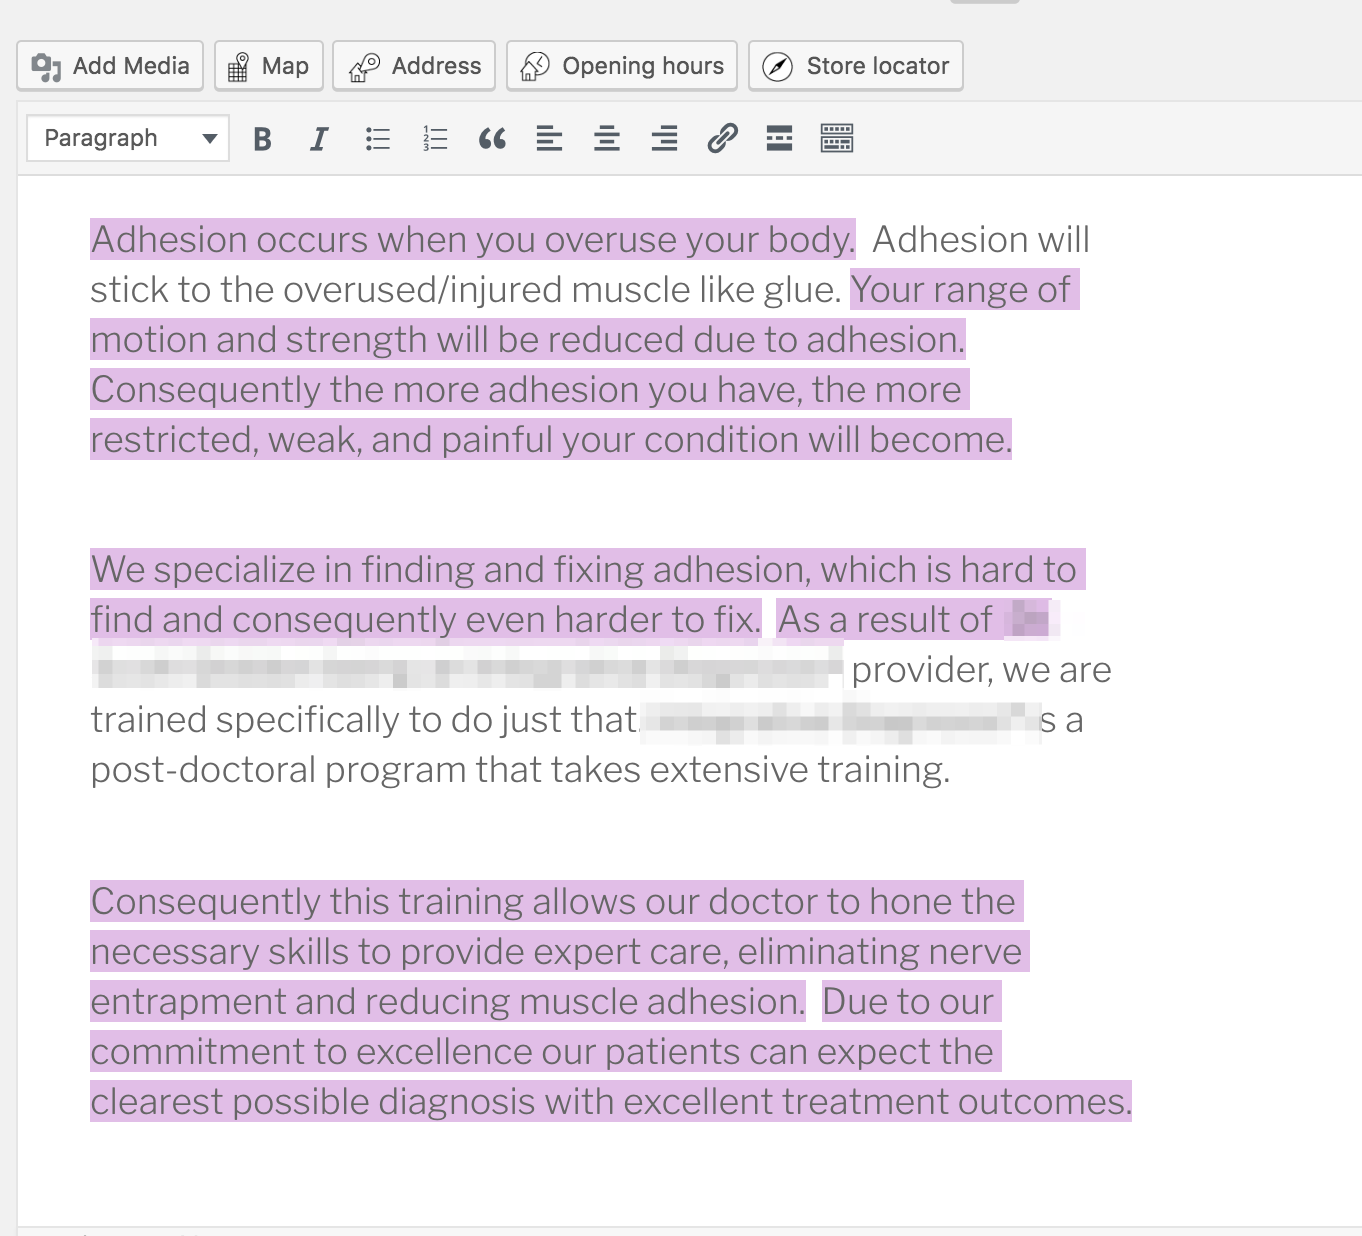 add in some links and see yoast fail to highlight transition words